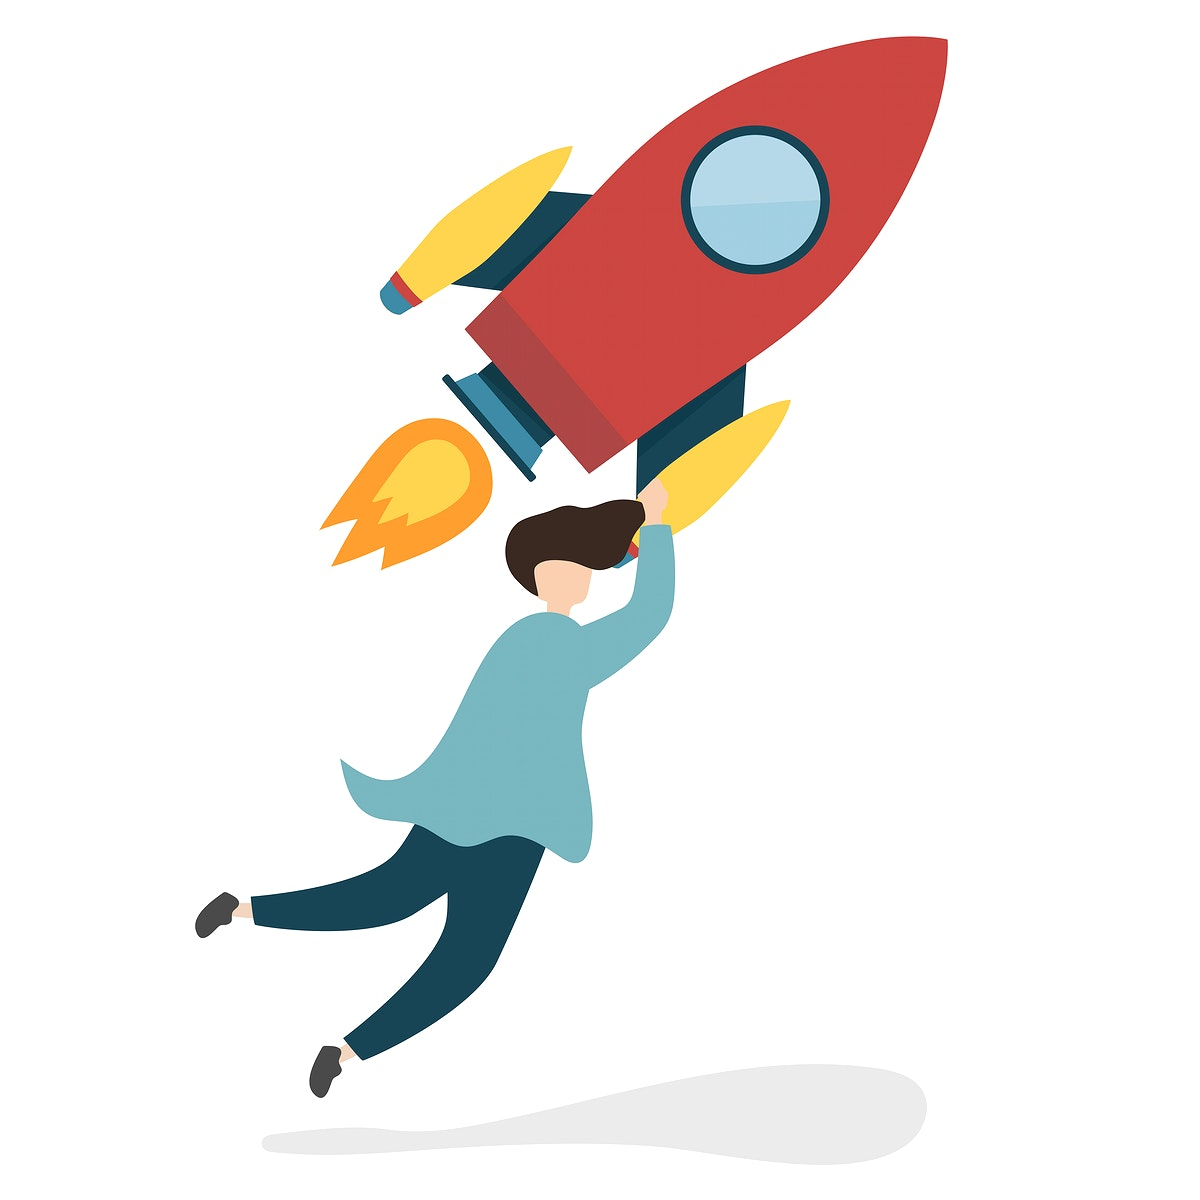 Illustration of a character with a flying rocket ship